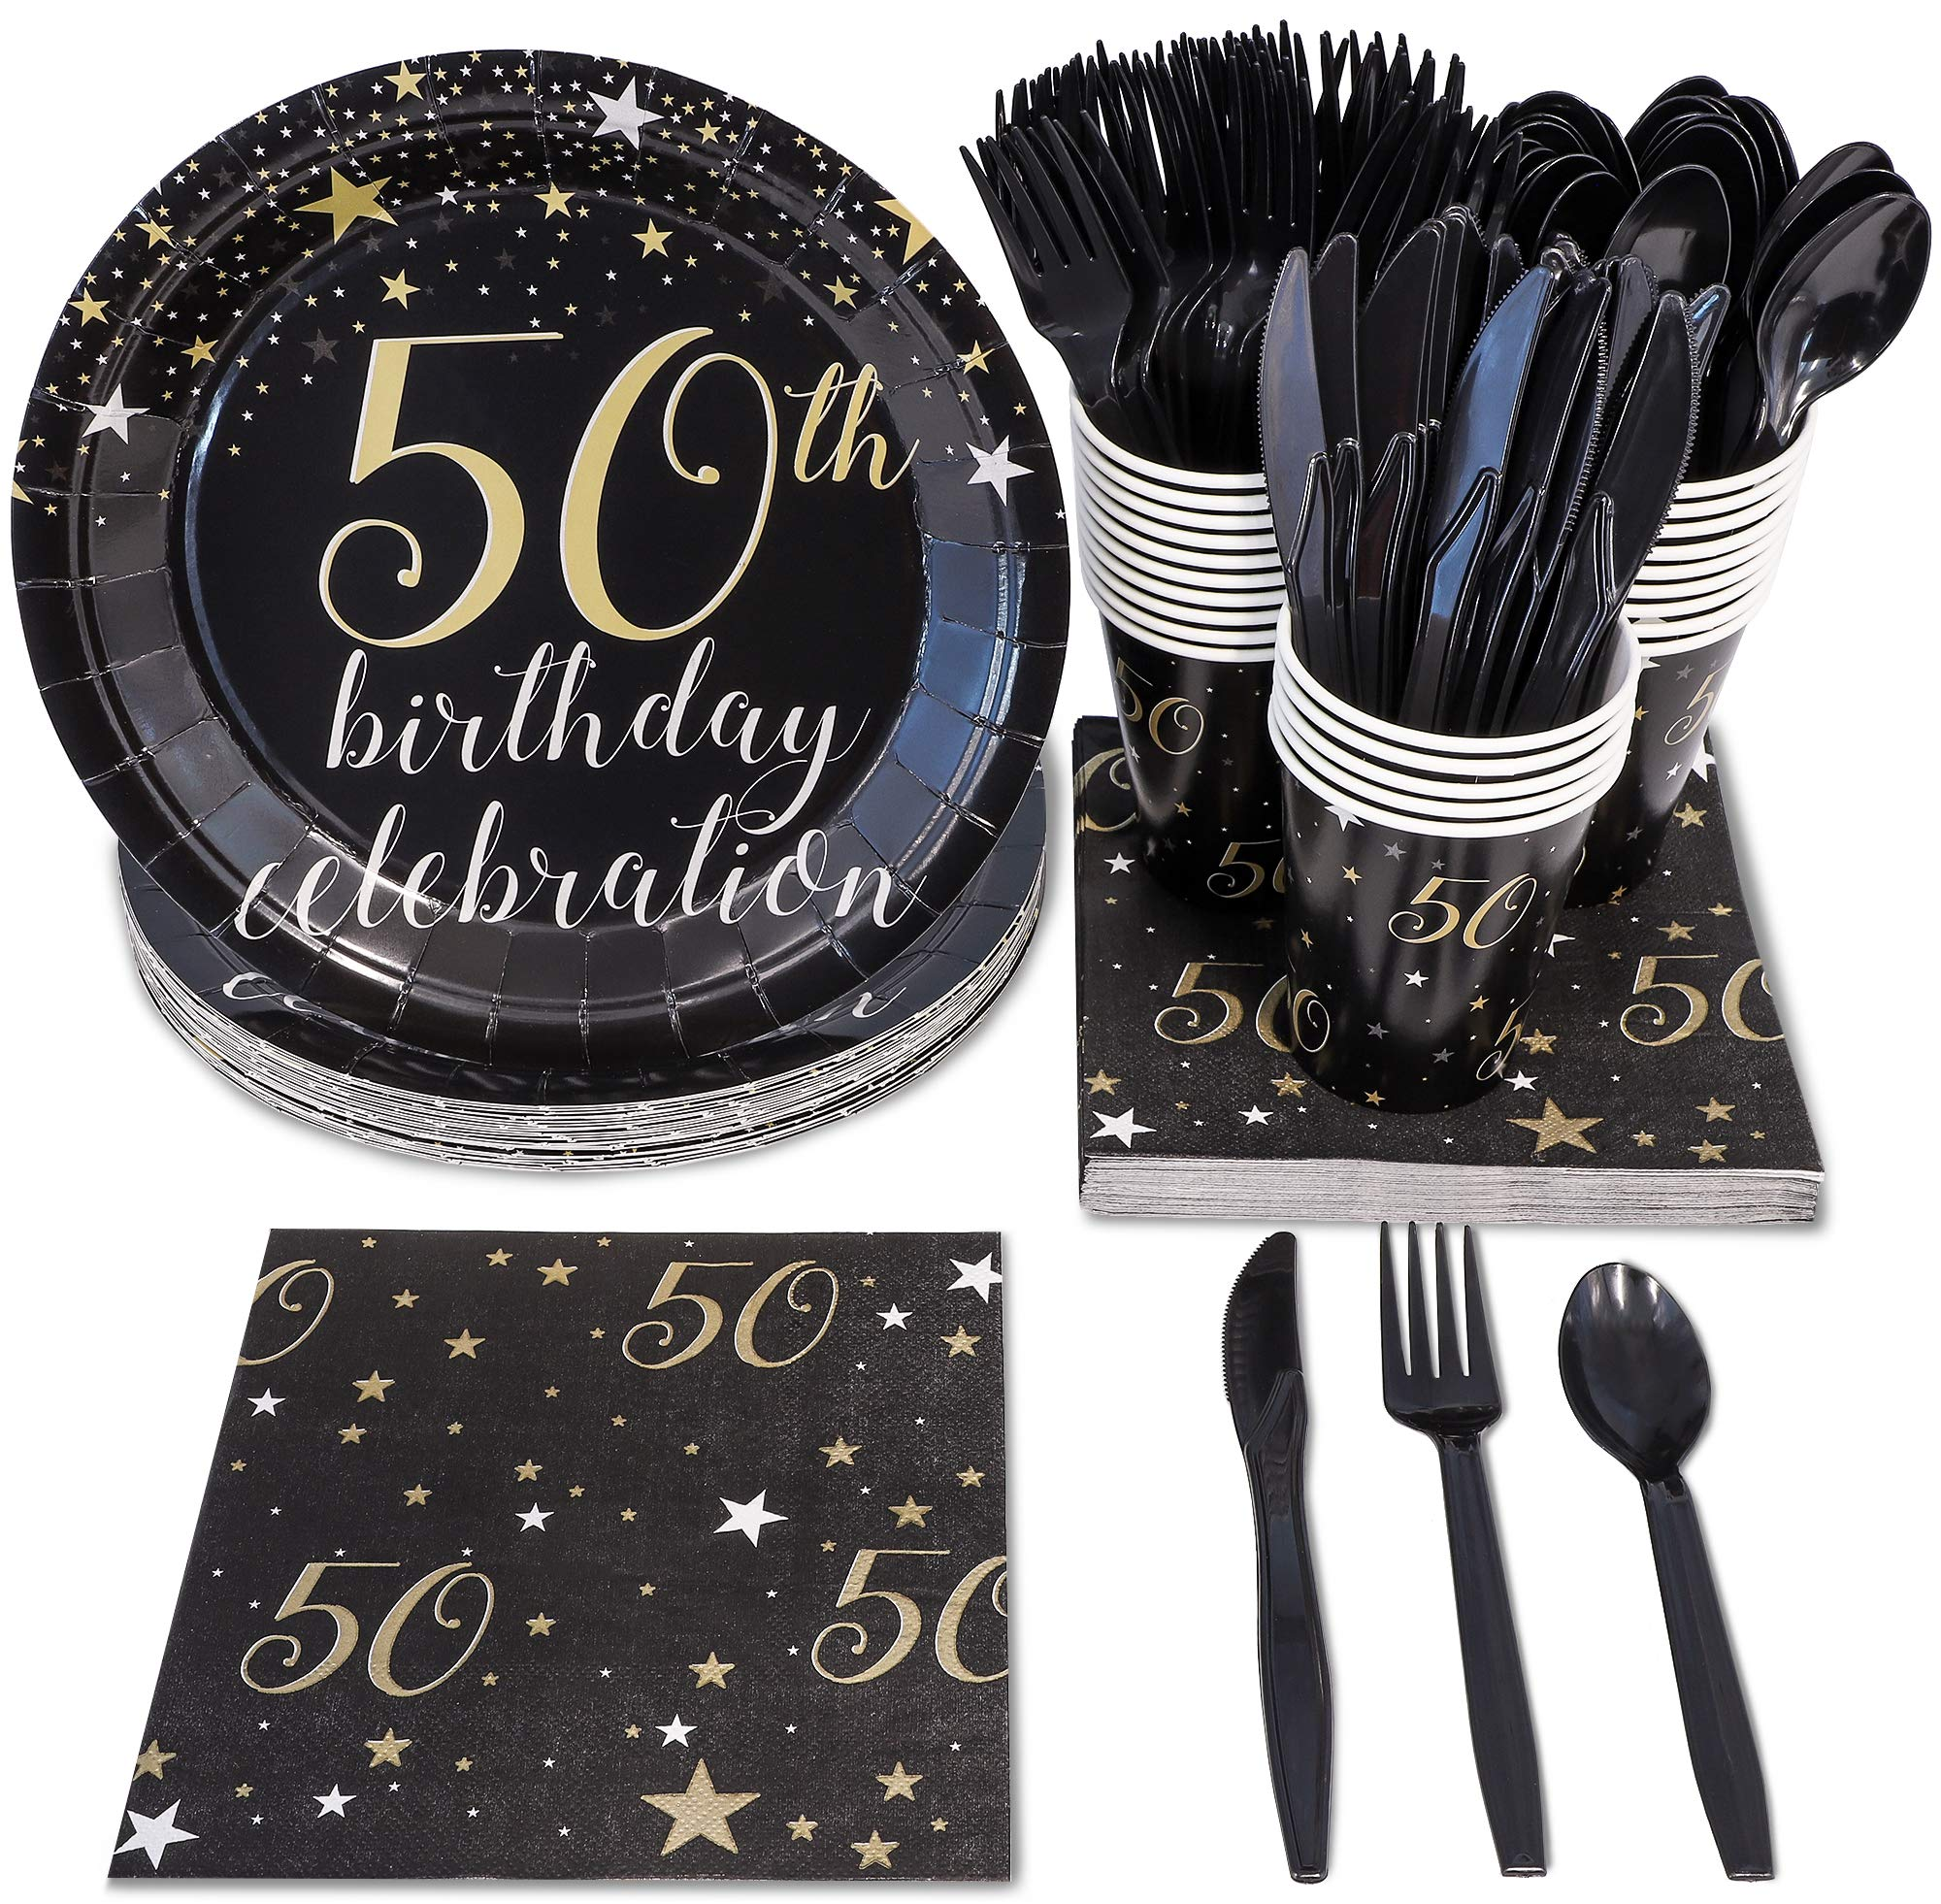 50th Birthday Party Supplies - Serves 24 - Includes Plastic Knives, Spoons, Forks, Paper Plates, Napkins, and Cups Perfect for Birthdays by Blue Panda